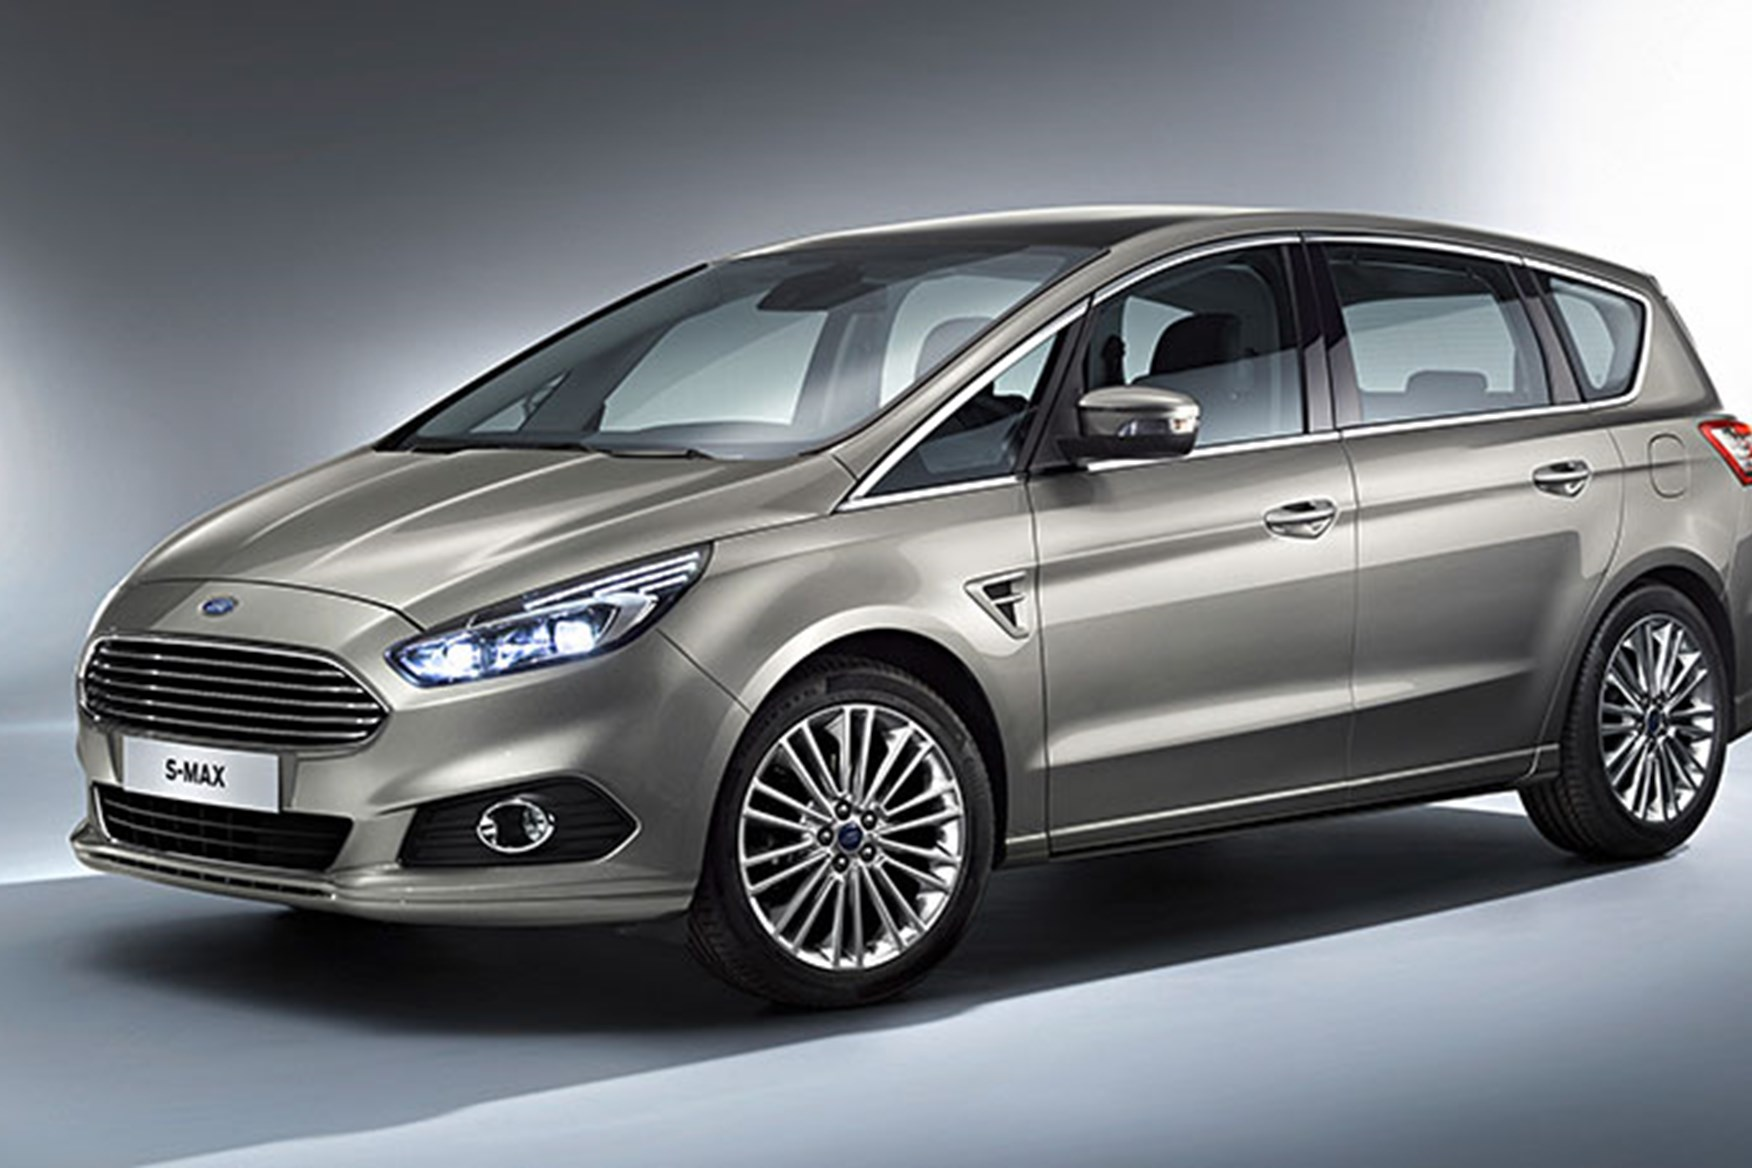 Honest 2015 S-Max is based on same large car platform as new Mondeo. Which is arriving any day now. A-ny-day now. Soon. It really is. Honest New Ford ... & New Ford S-Max (2015) official pictures and details by CAR Magazine markmcfarlin.com